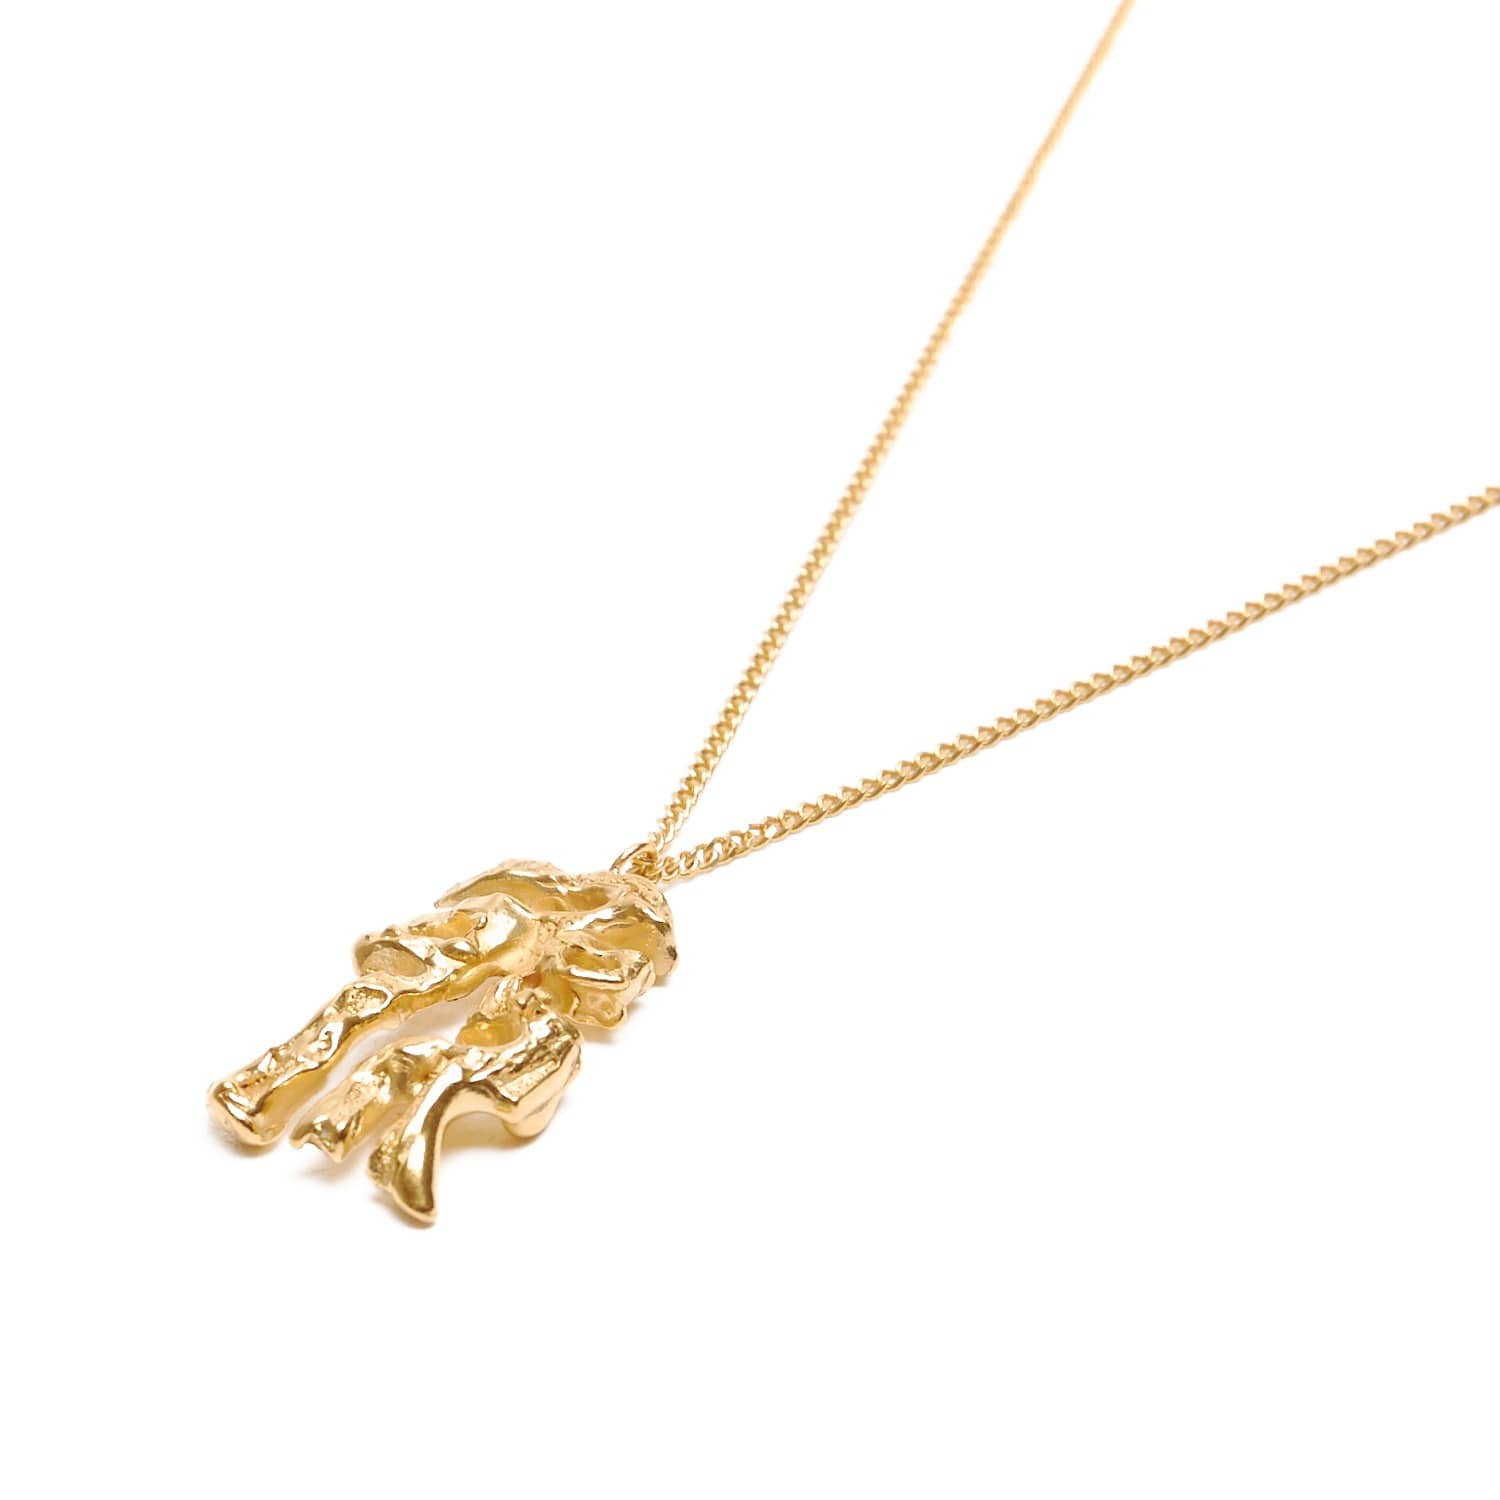 of zodiac image online rose chinese plated jewelry us silver necklace en lucky gold necklaces pendant shop dog